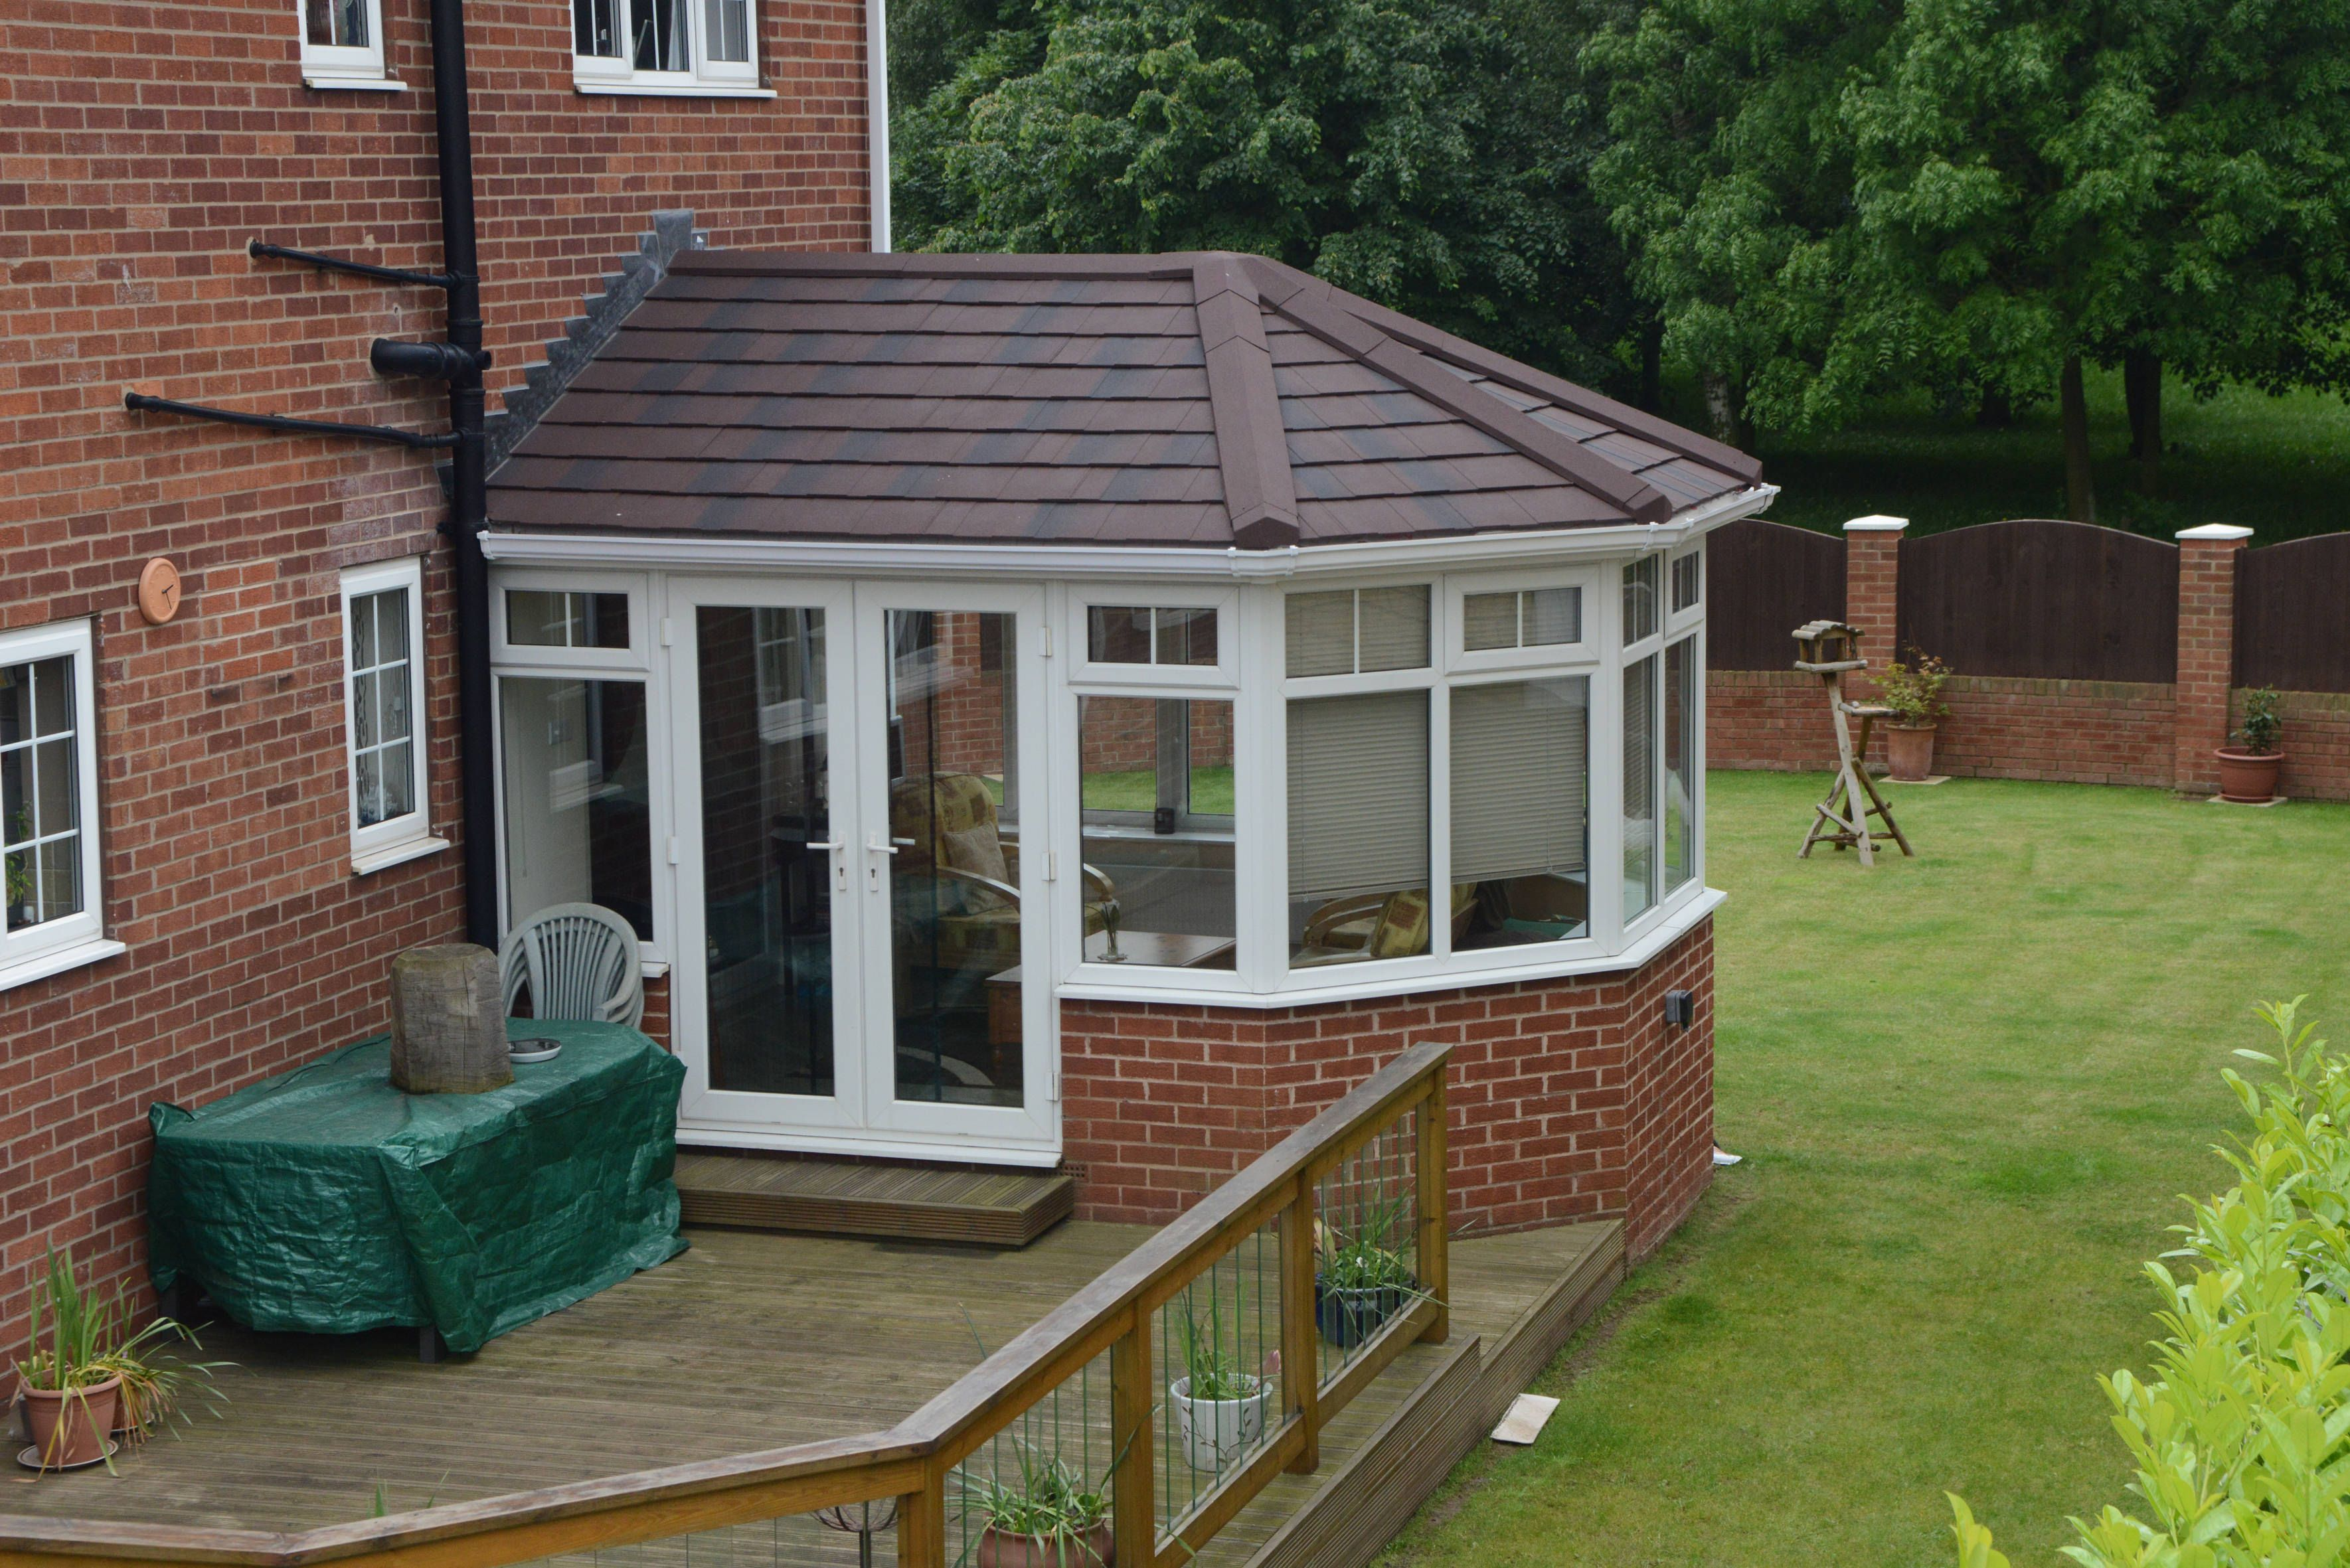 Tiled Roof Conservatory Lifestyle Garden Room Extensions Conservatory Roof Conservatory